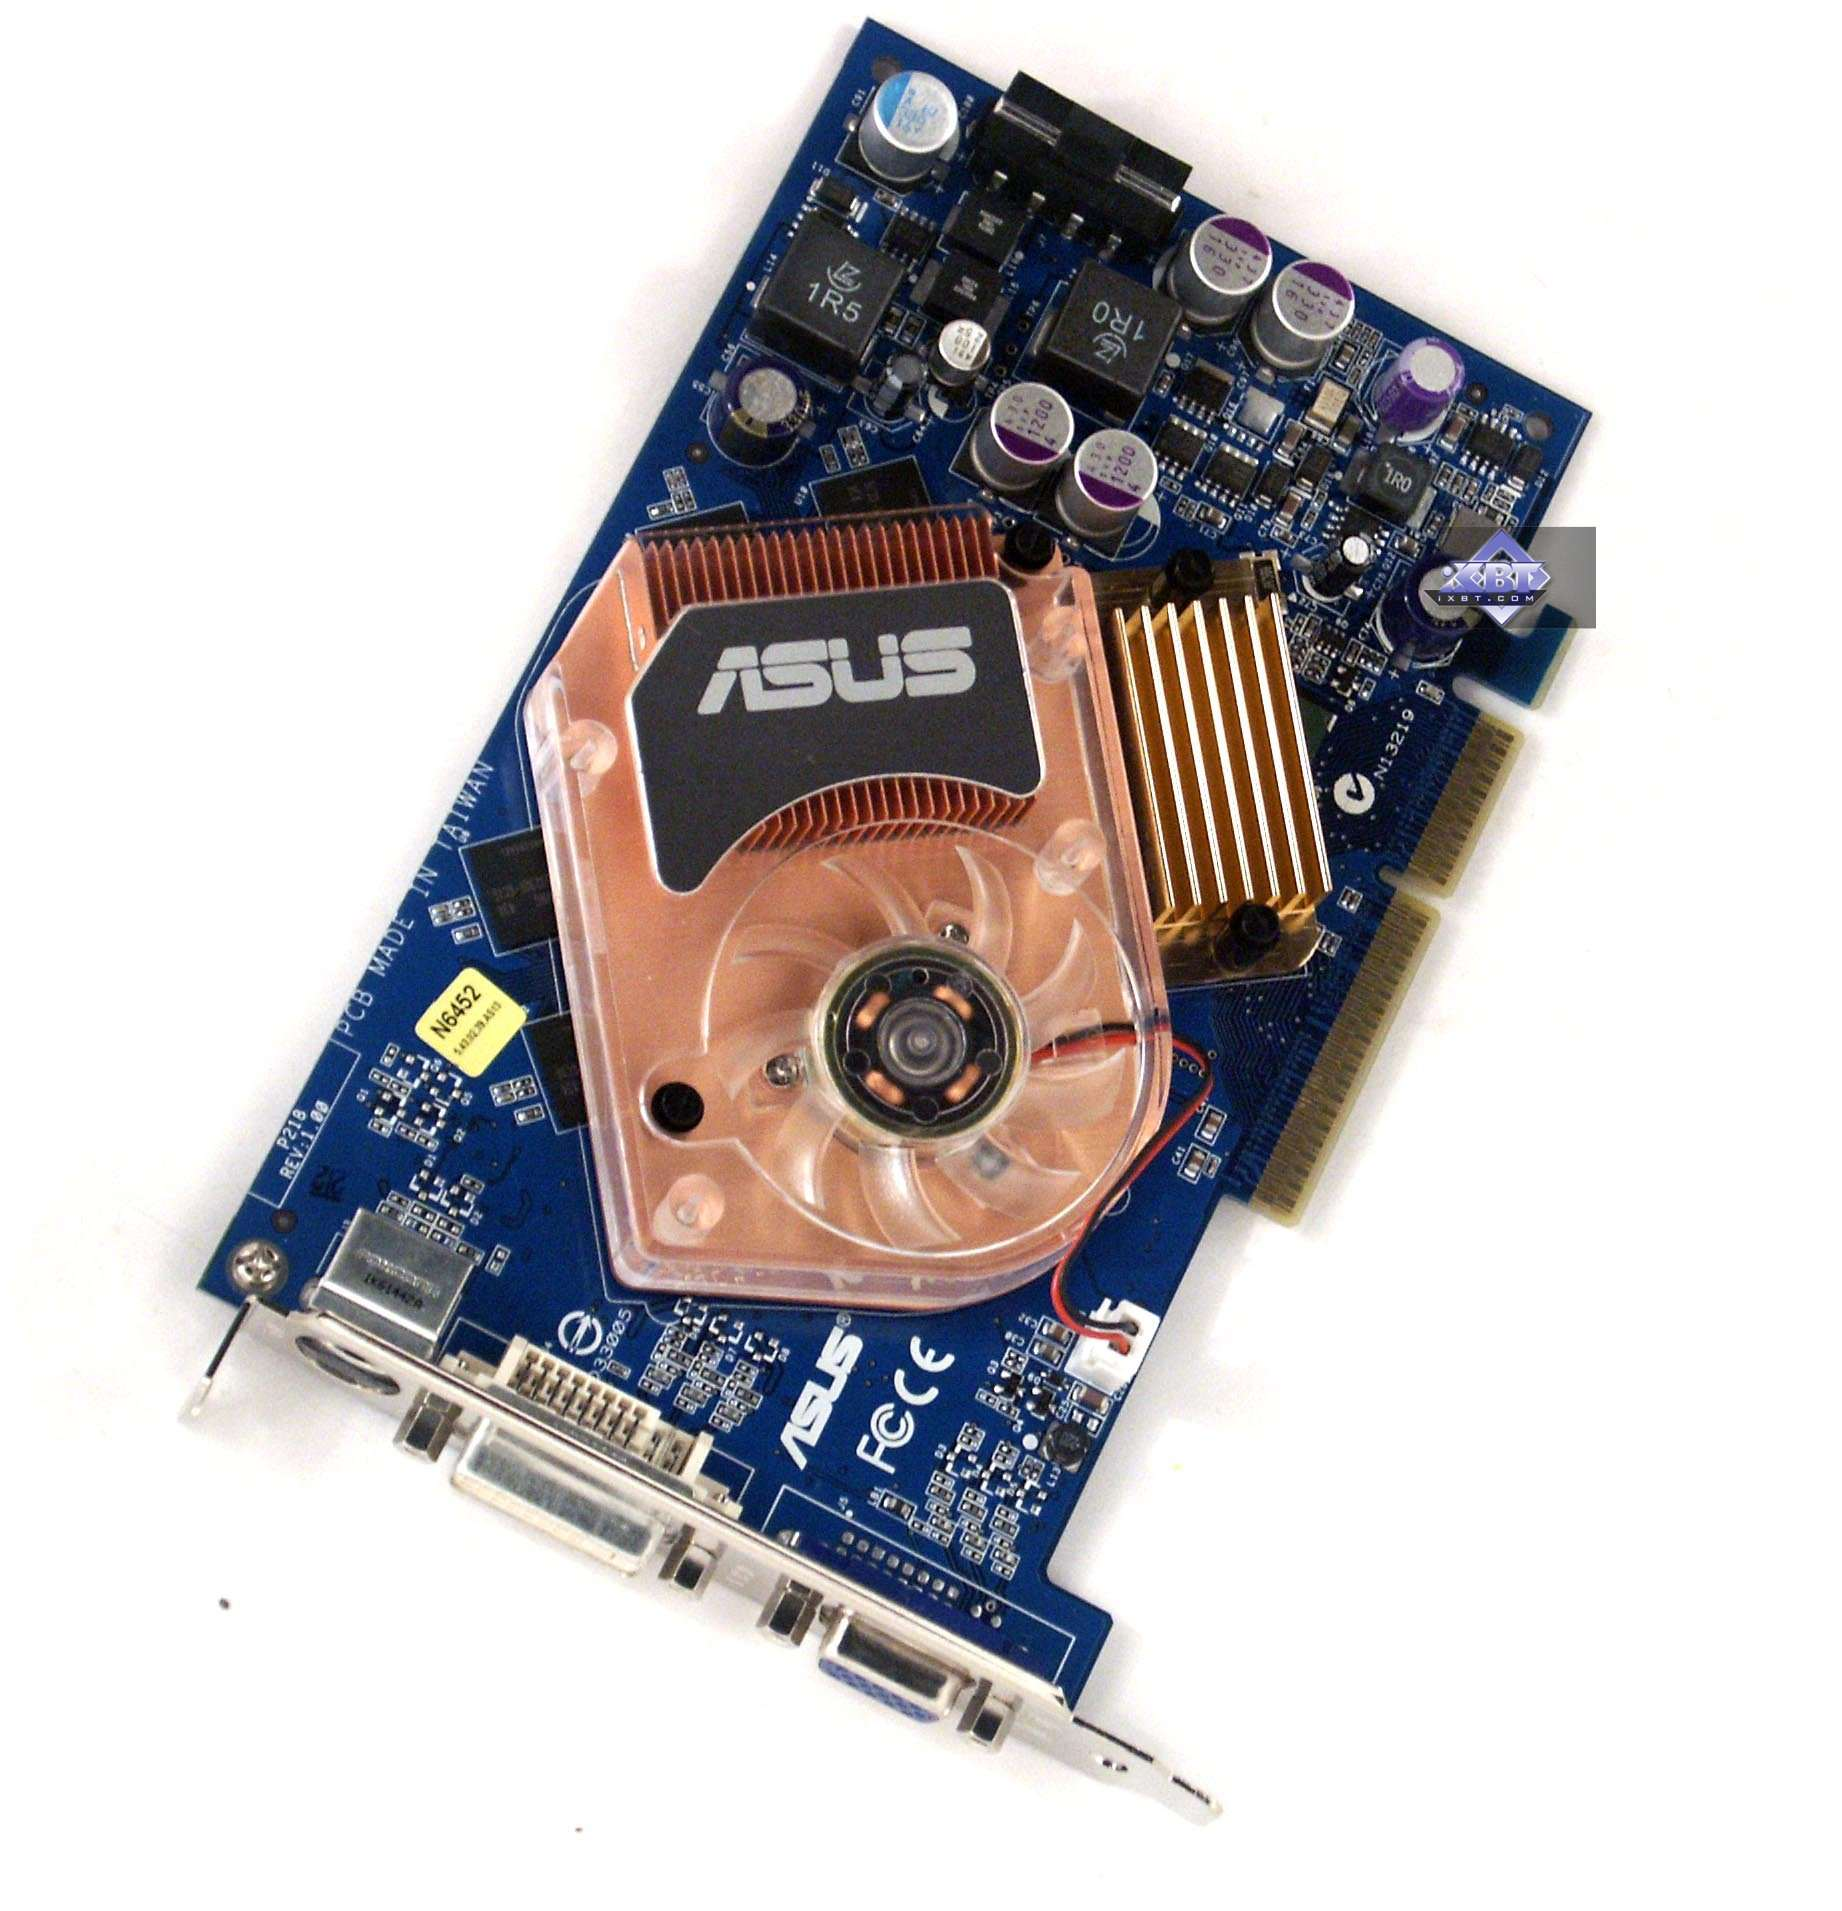 http://www.ixbt.com/video2/images/asus-3/asus-6600gtagp-front.jpg